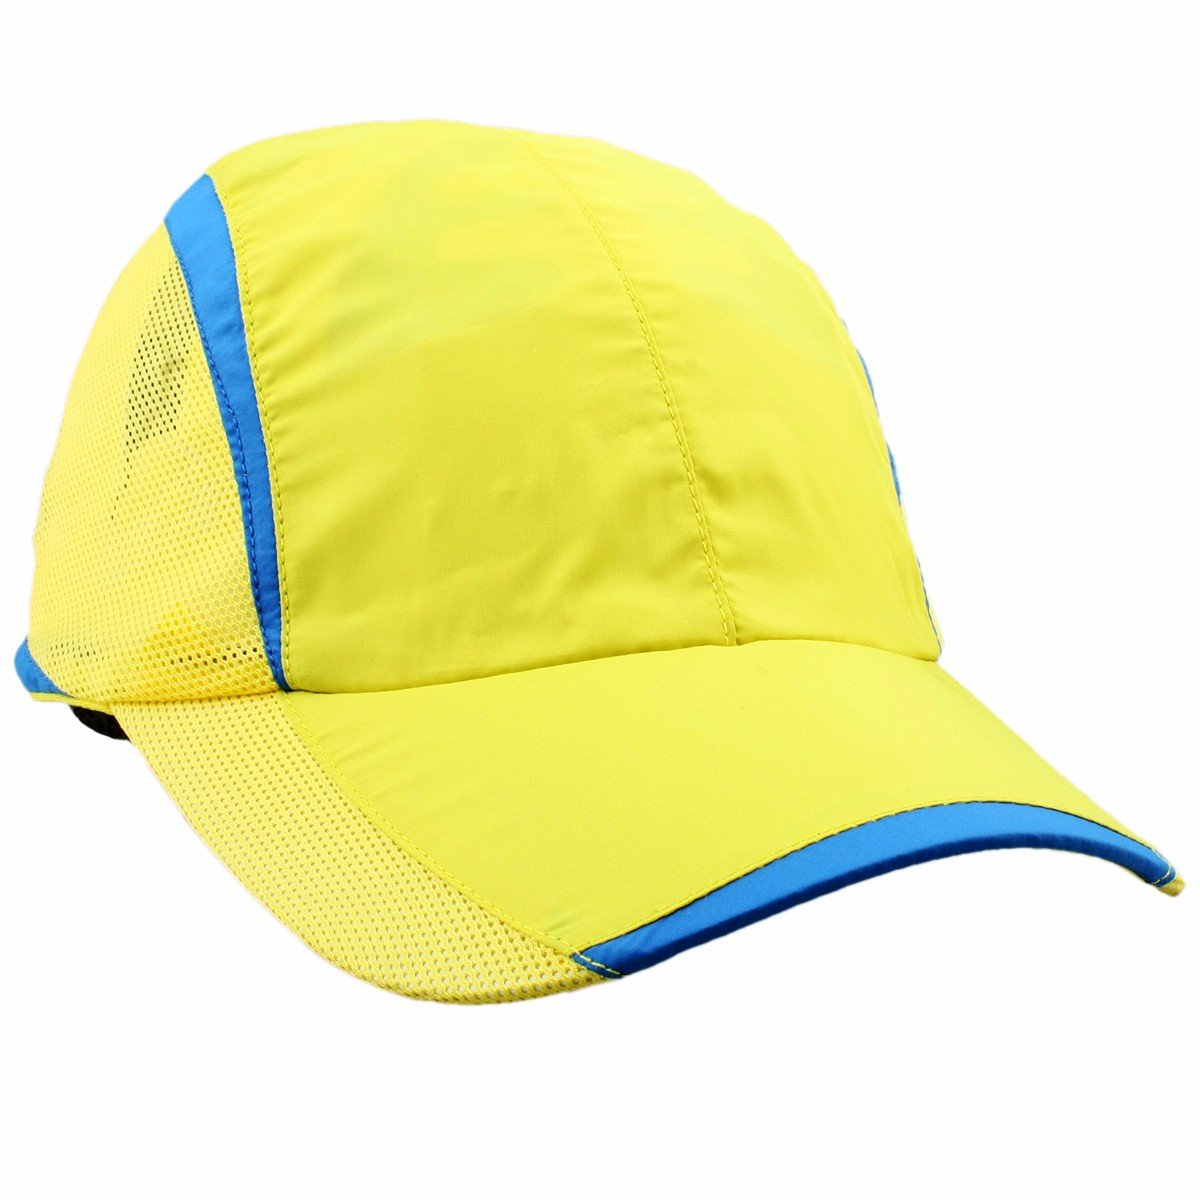 249e2054d7c3a Amazon.com   squaregarden Baseball Cap Hat